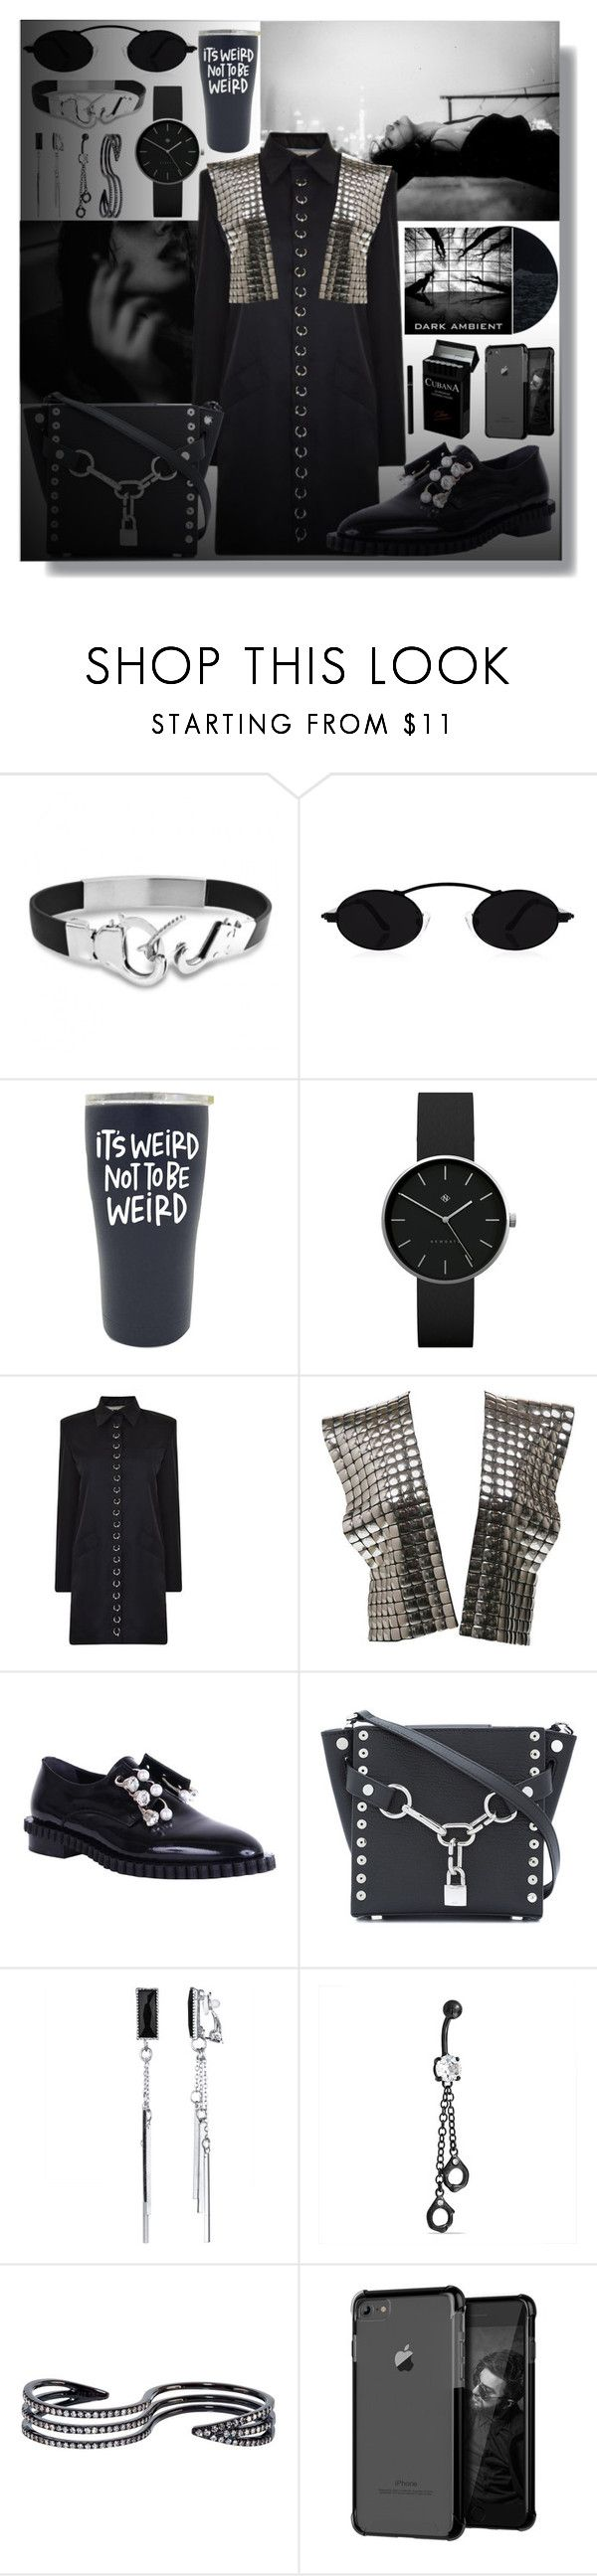 """Untitled #111"" by shewalksinsilence ❤ liked on Polyvore featuring Bling Jewelry, Newgate, Ashley Williams, Krizia, Coliàc Martina Grasselli, Alexander Wang and Plukka"